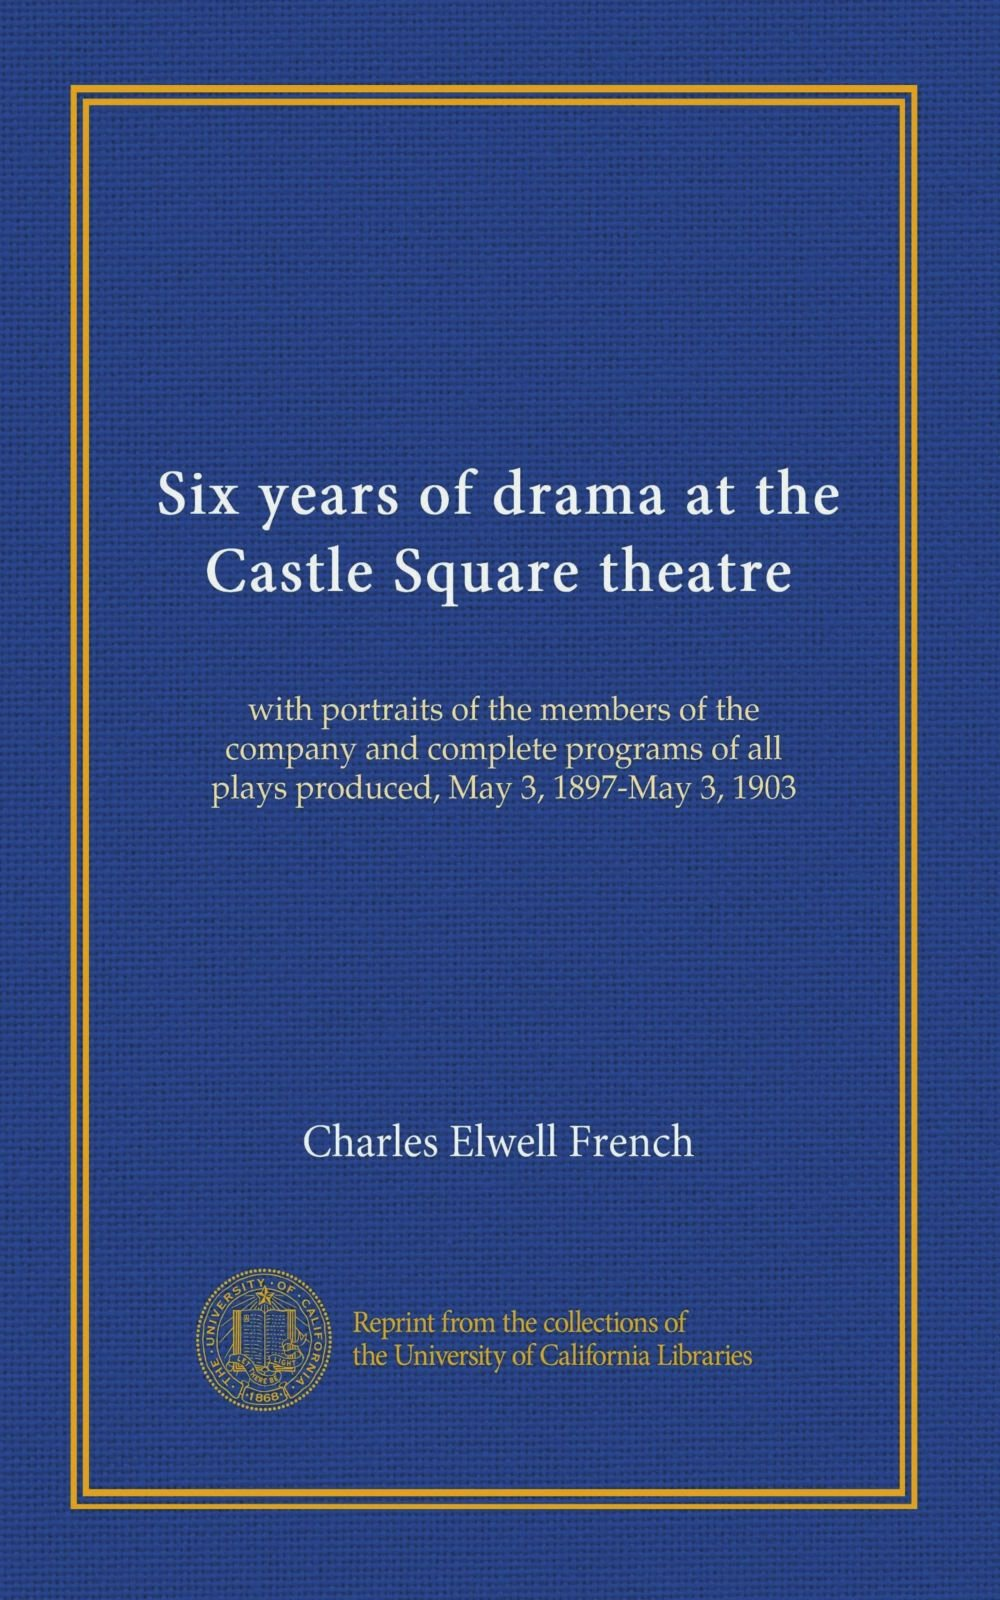 Six years of drama at the Castle Square theatre: with portraits of the members of the company and complete programs of all plays produced, May 3, 1897-May 3, 1903 PDF